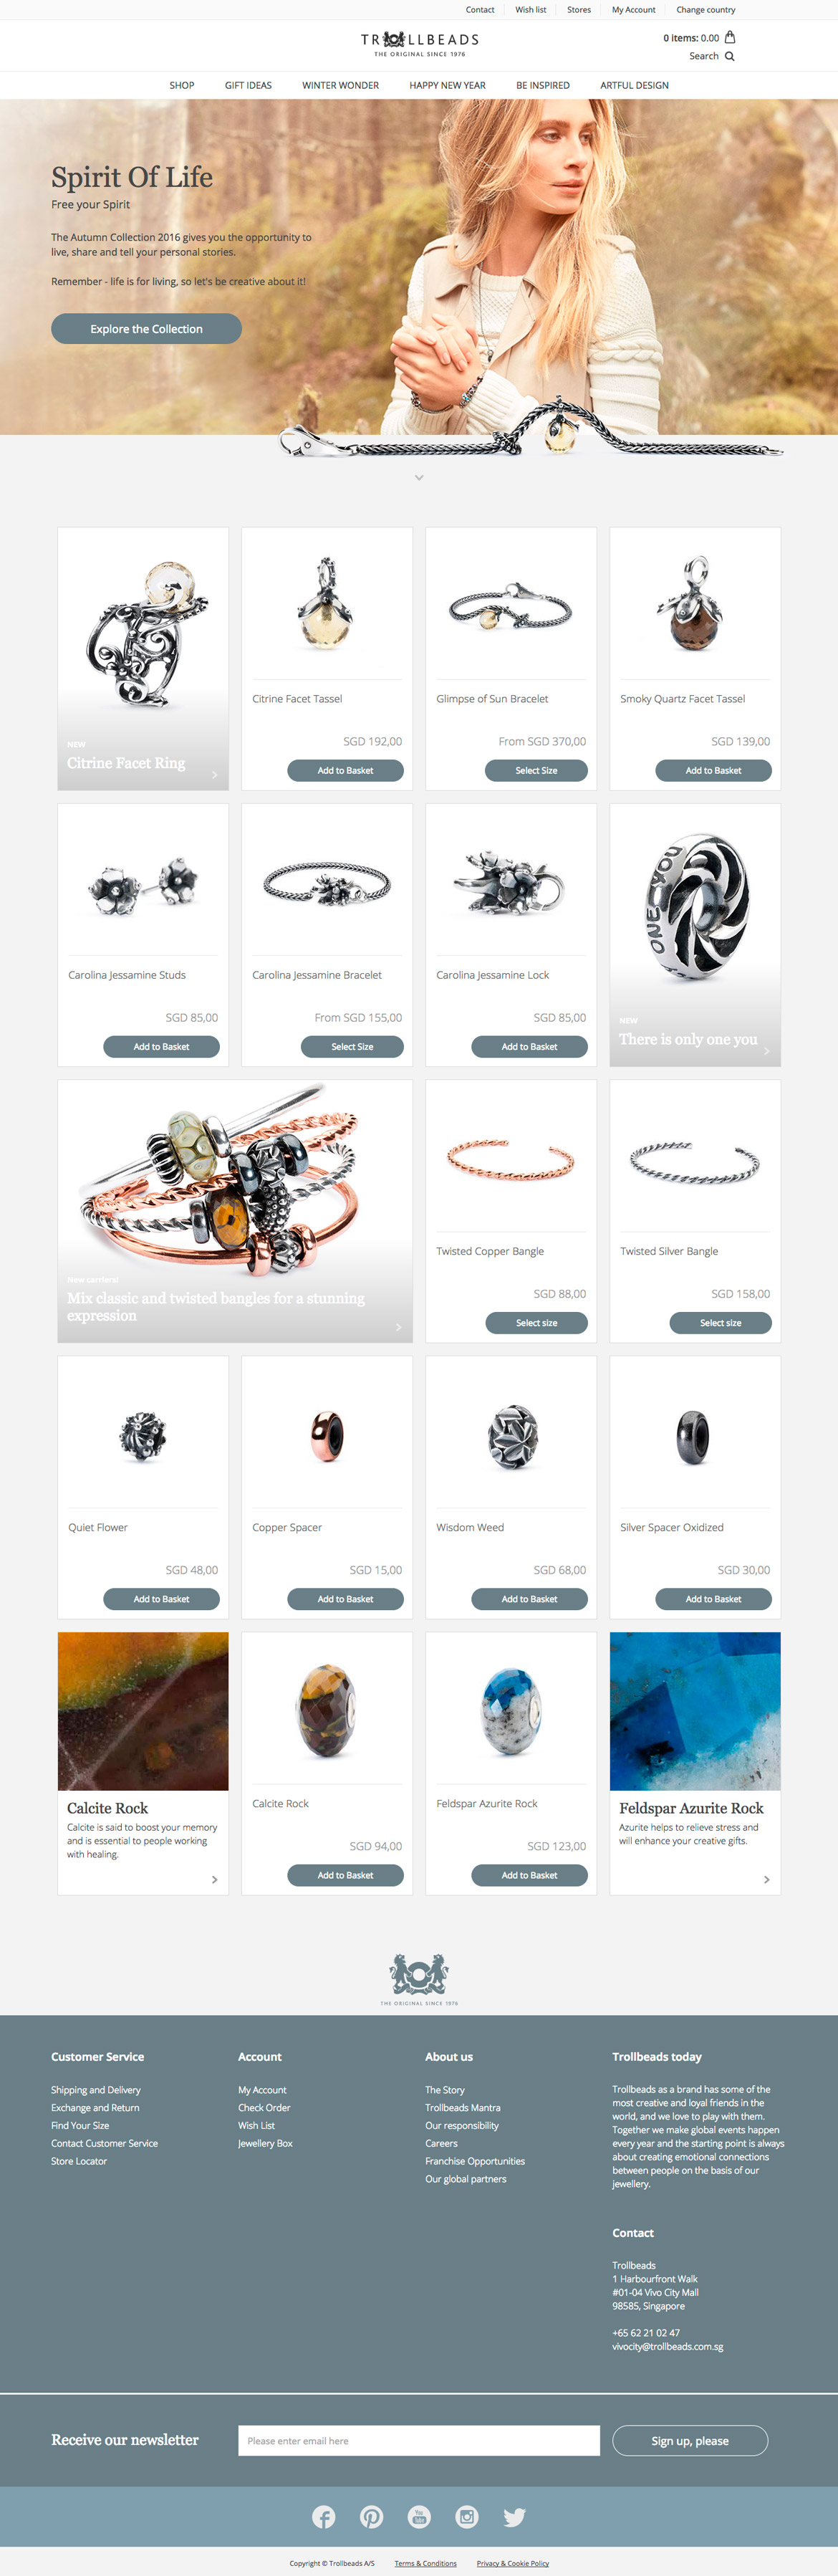 screencapture-trollbeads-en-sg-spirit-of-life-1483616280740